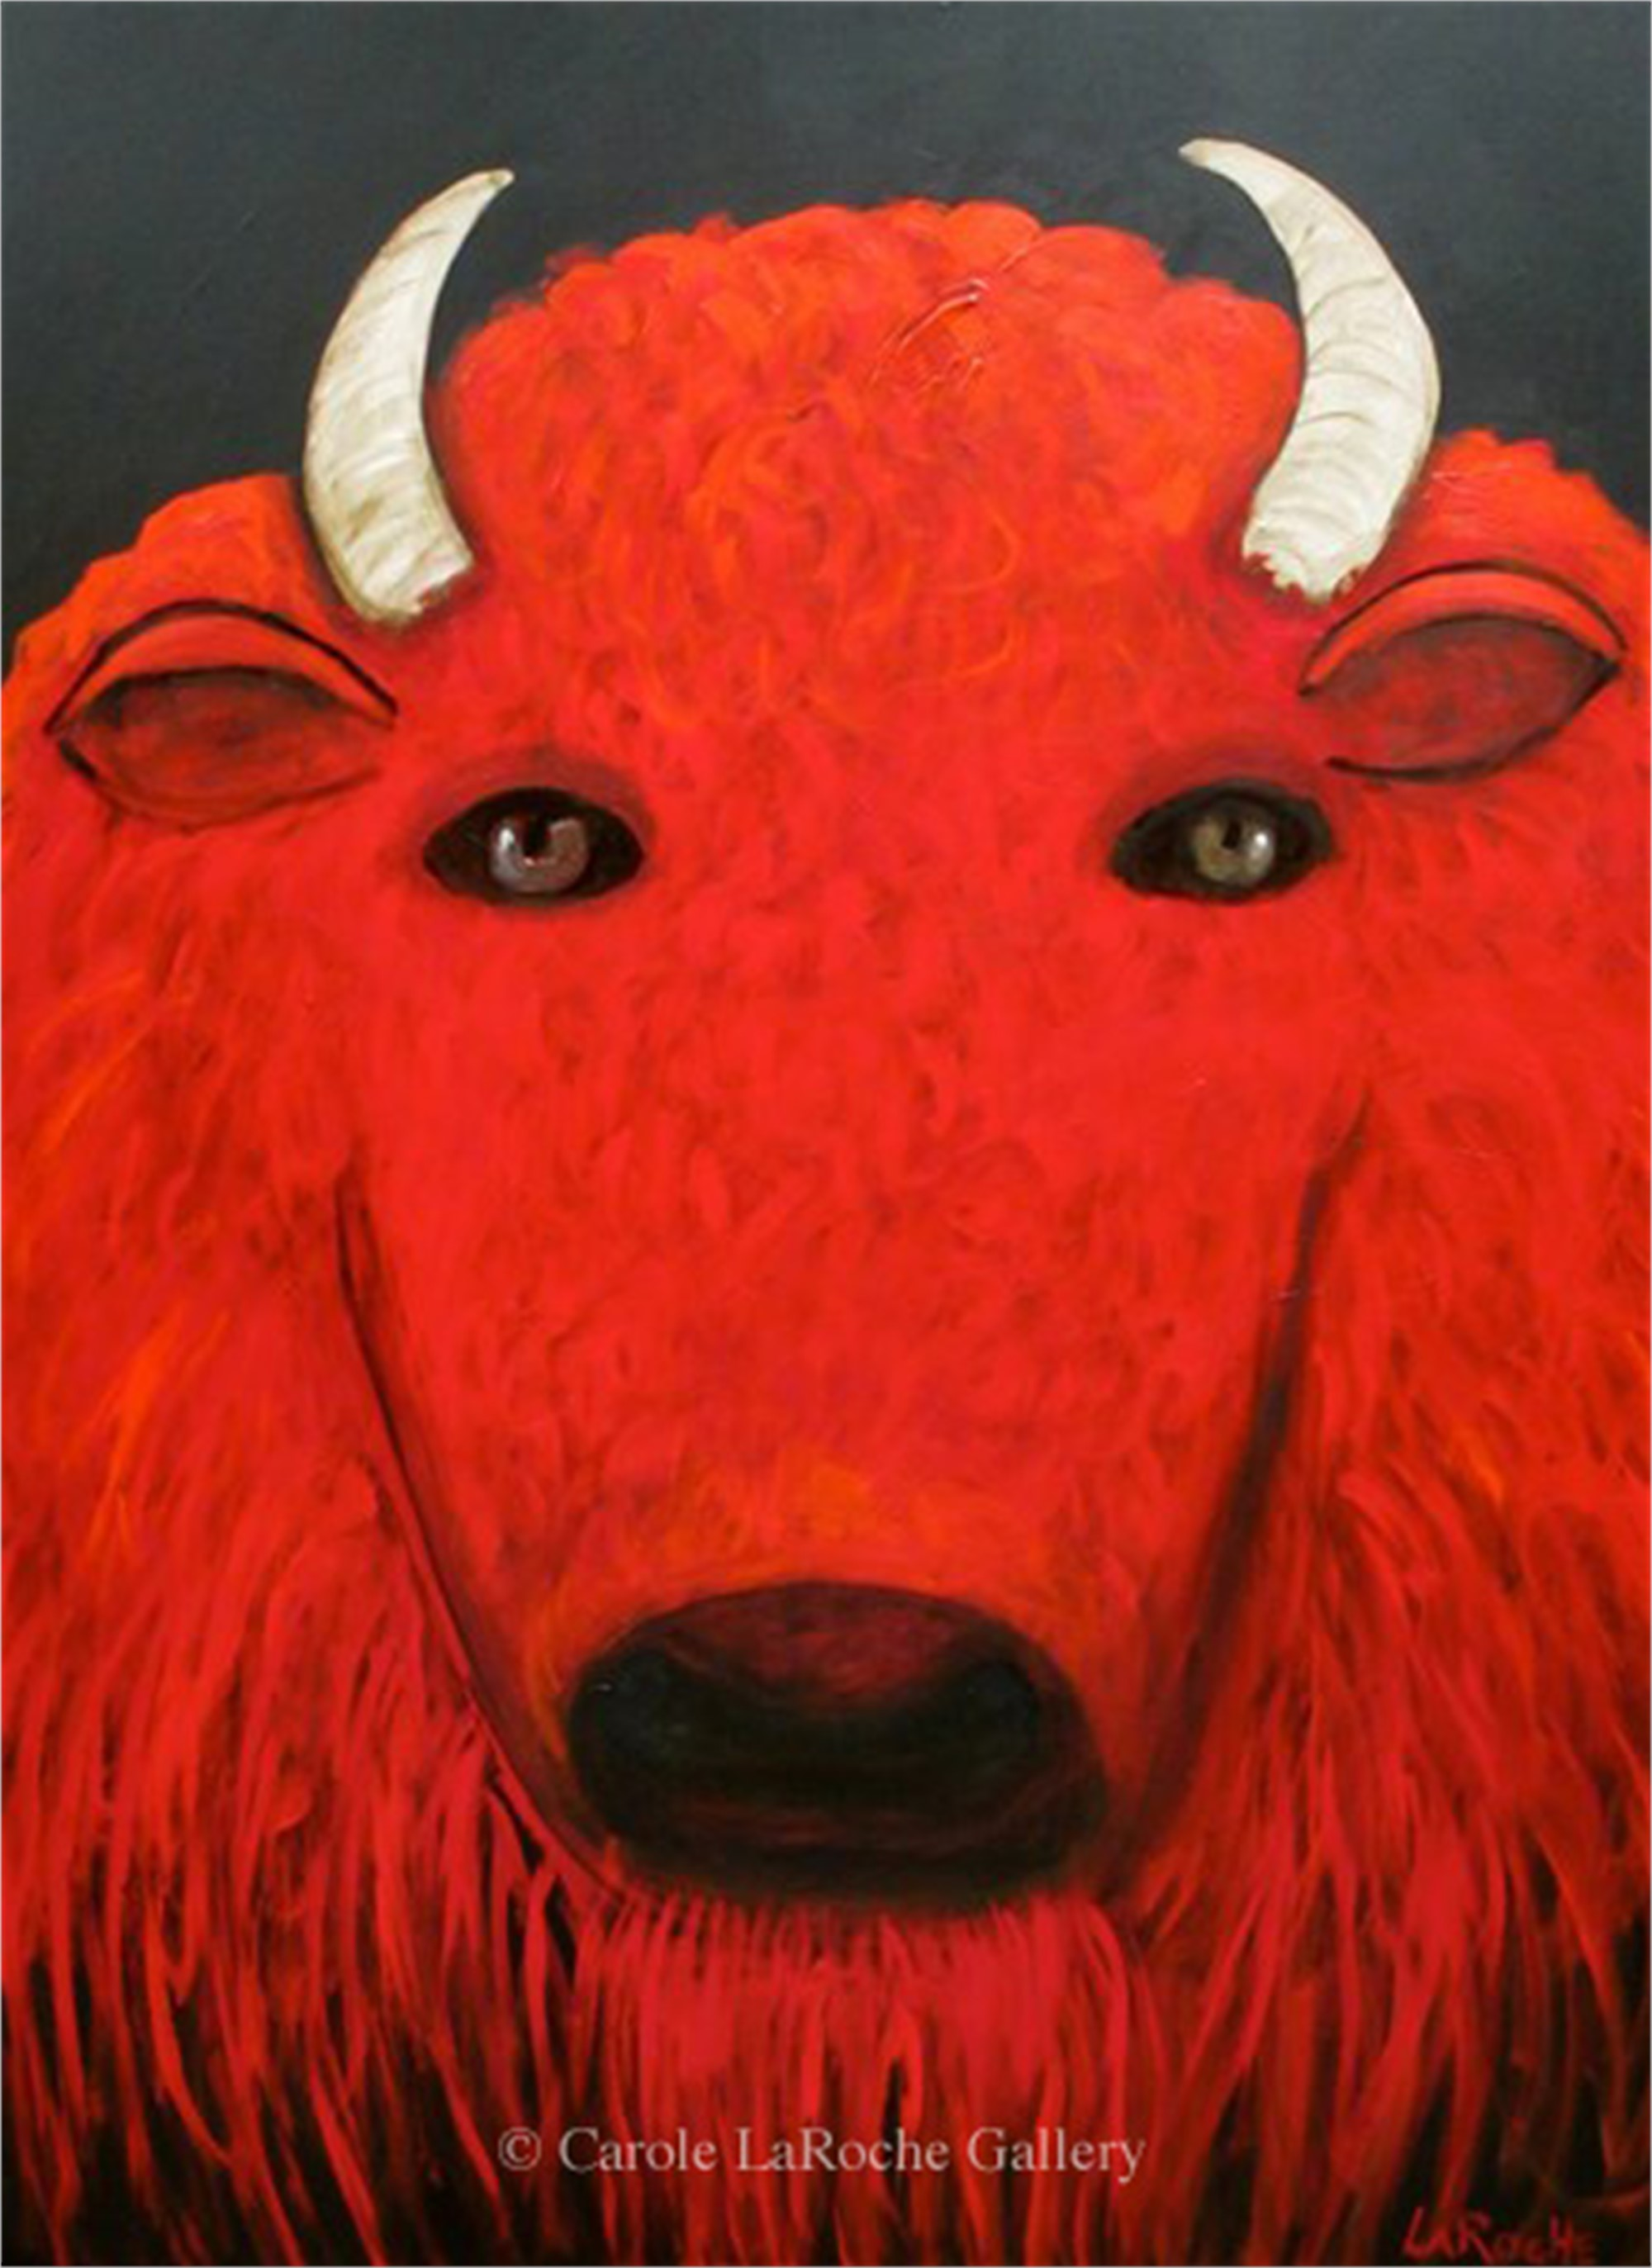 RED BUFFALO by Carole LaRoche